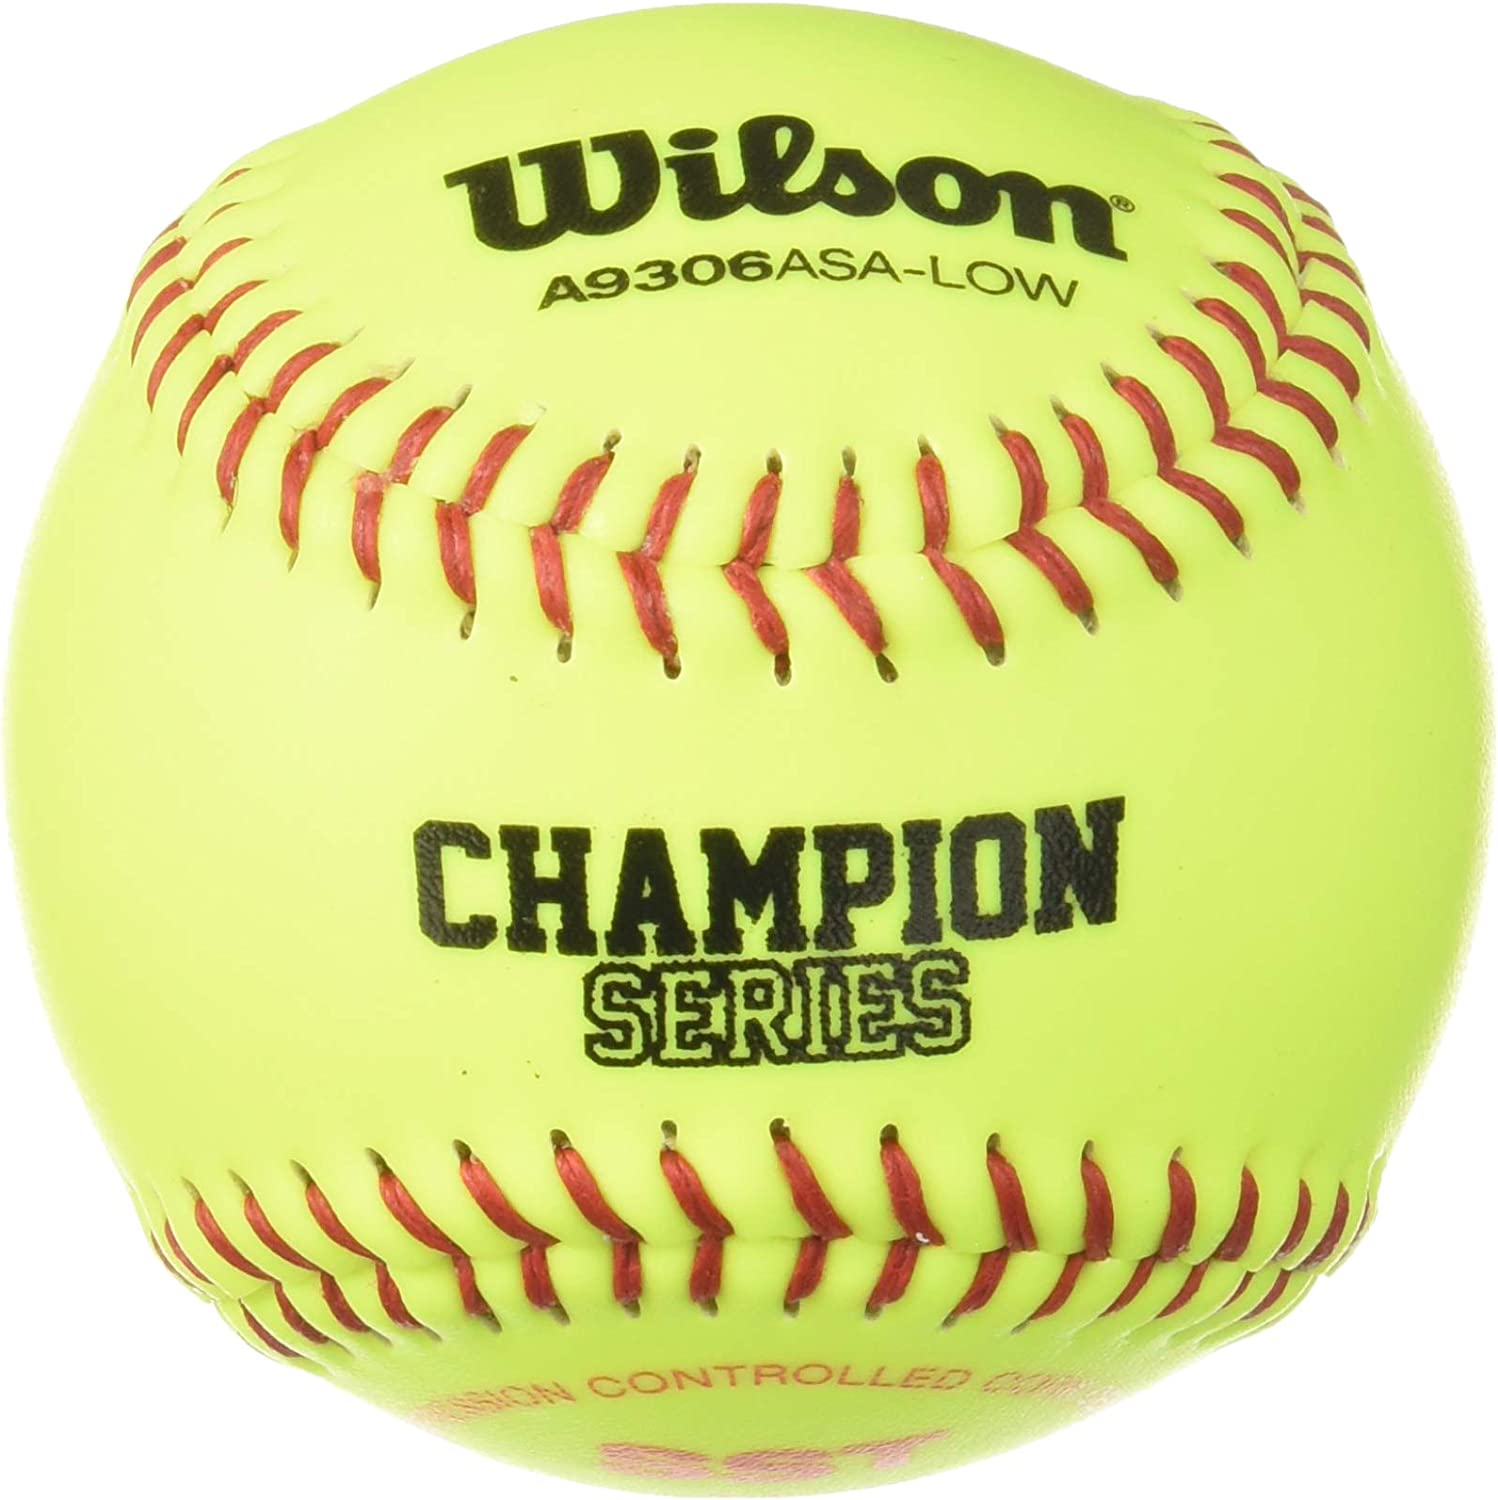 Wilson A9306 ASA Series Softball (12-Pack), 11-Inch, Optic Yellow : Sports & Outdoors